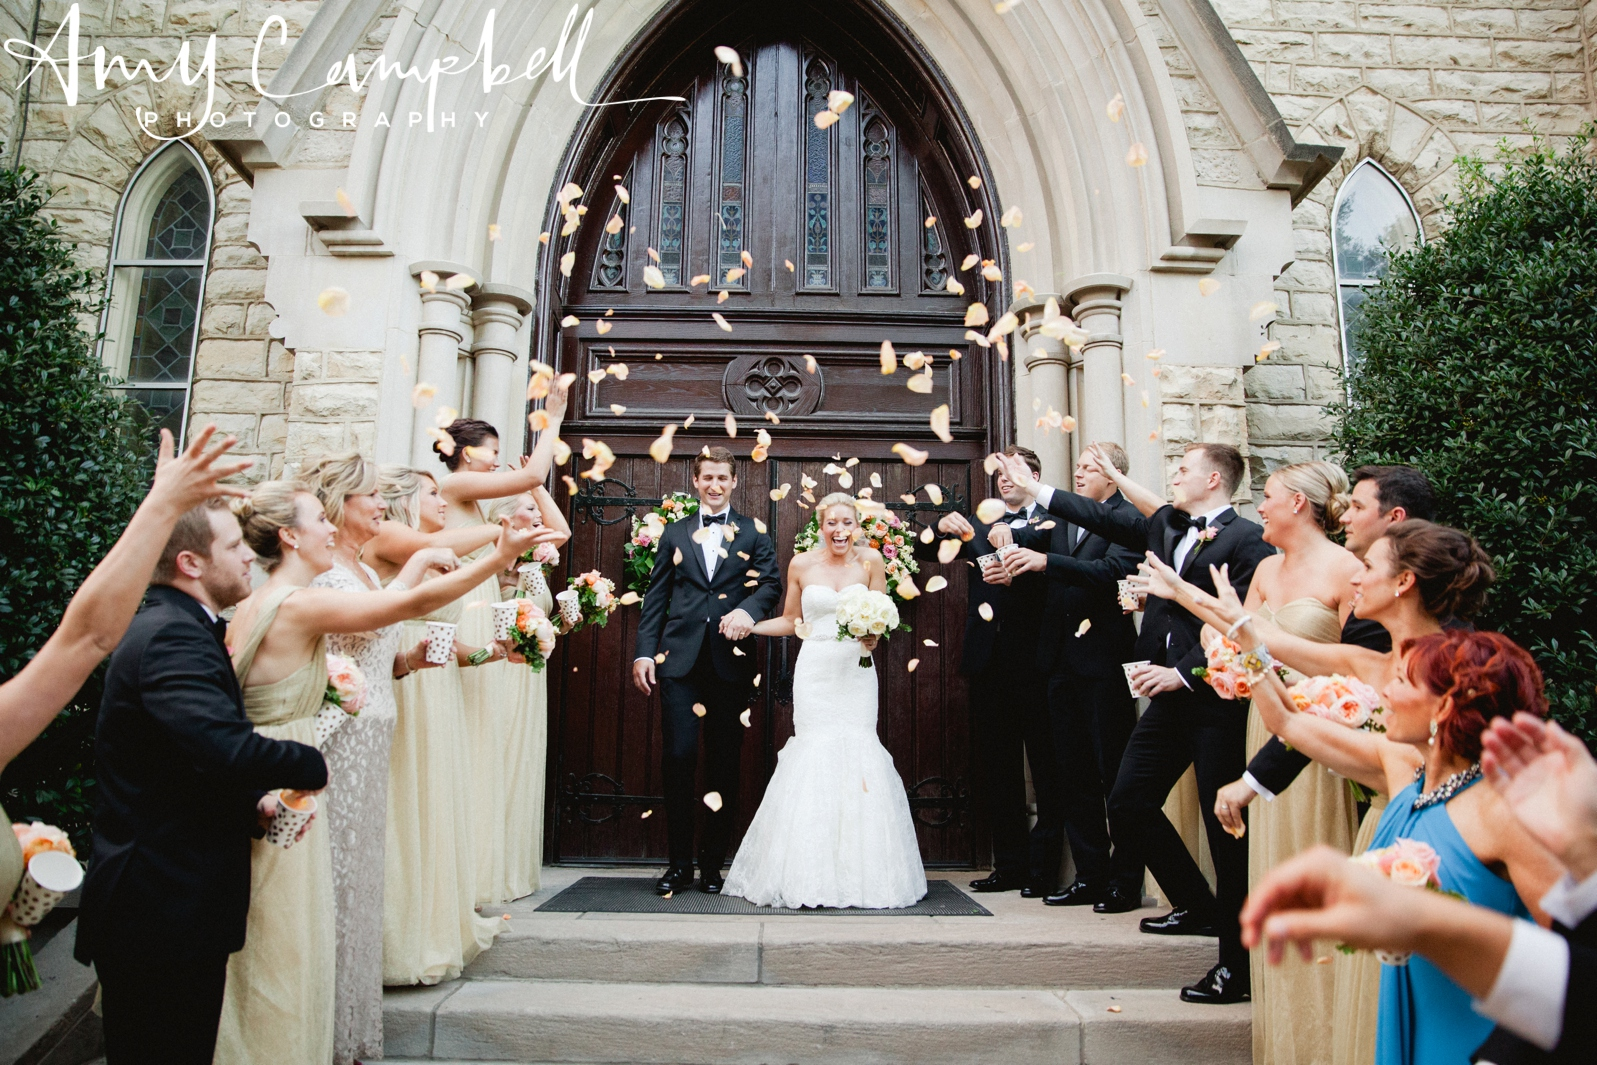 chelseamike_wedss_pics_amycampbellphotography_080.jpg